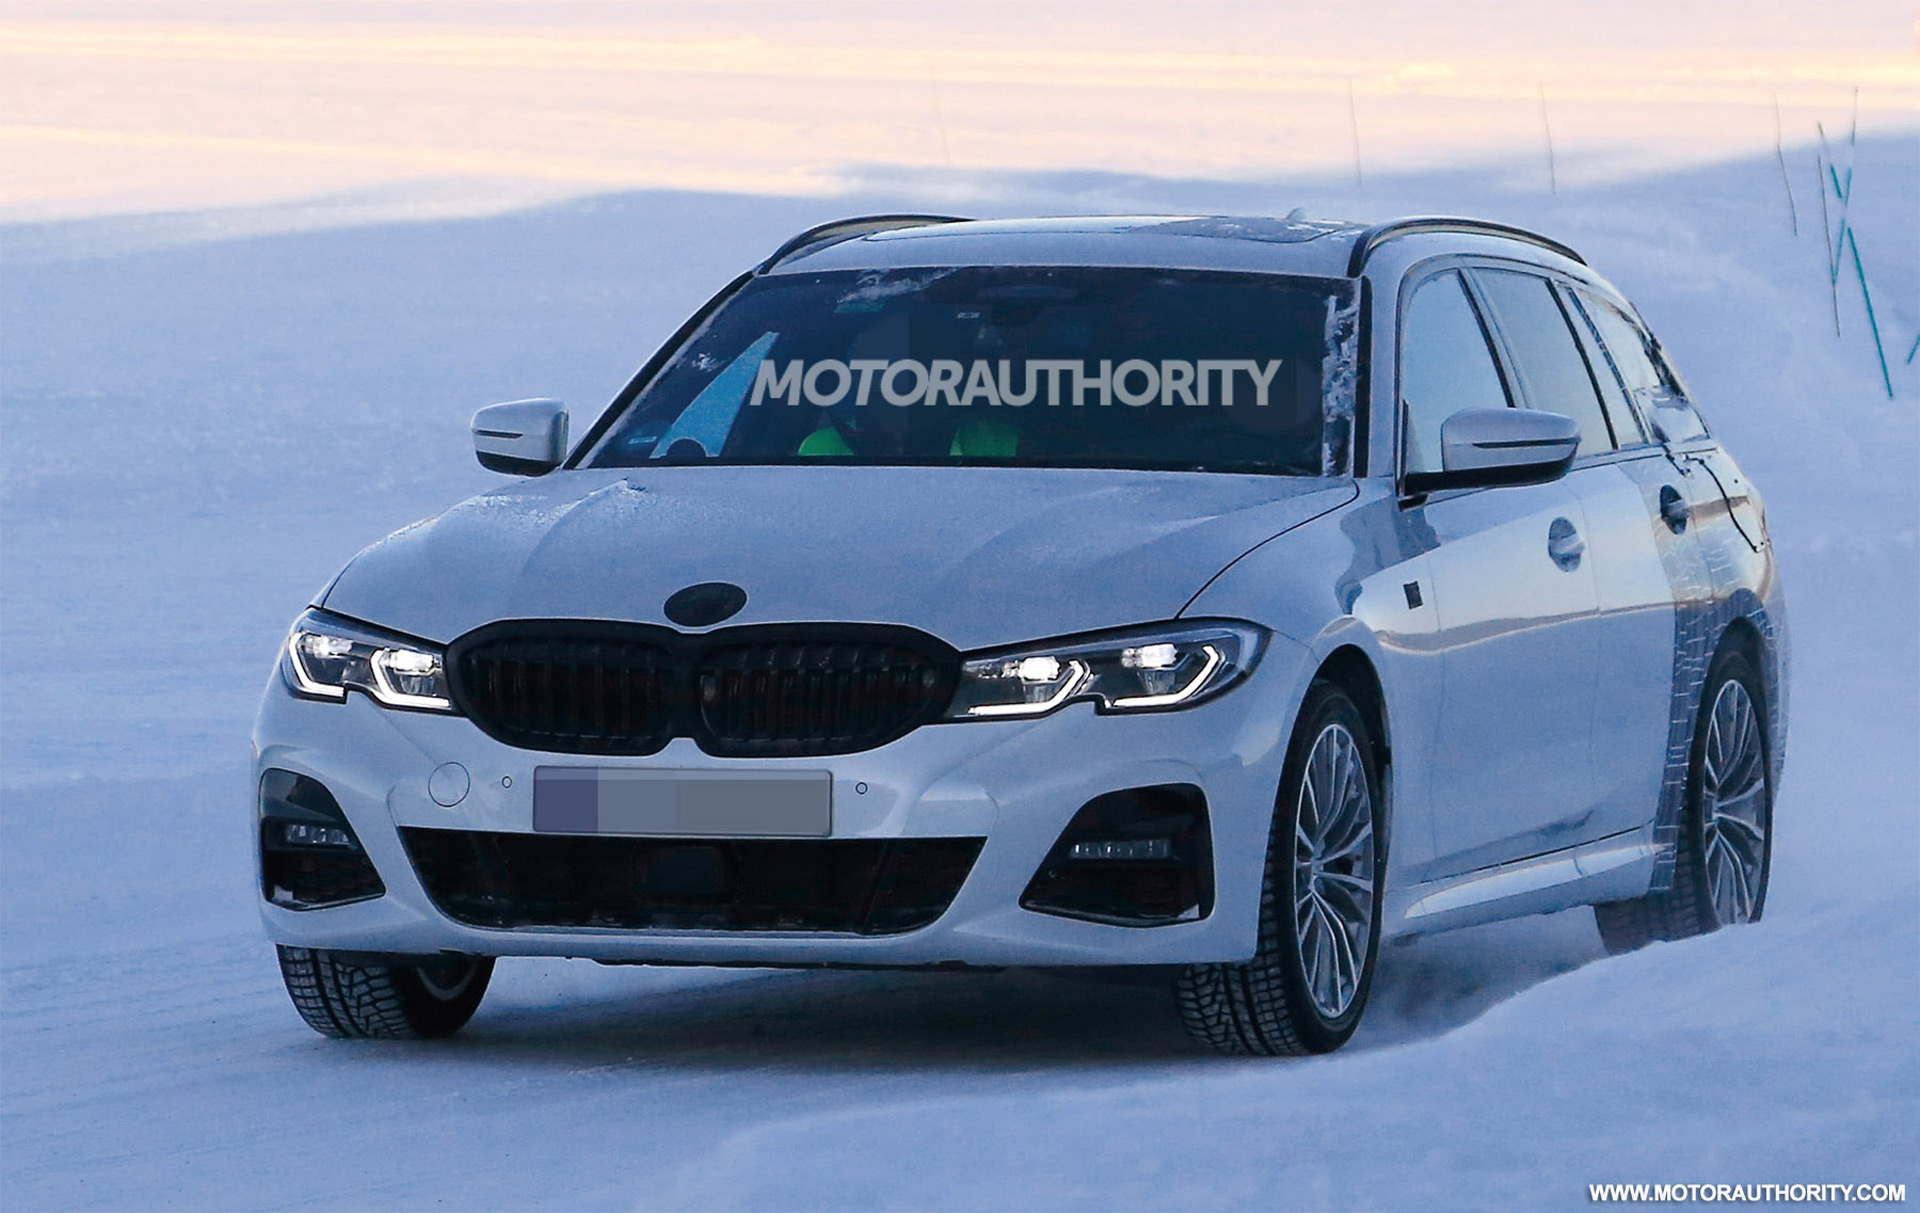 33 New 2020 Spy Shots BMW 3 Series Photos